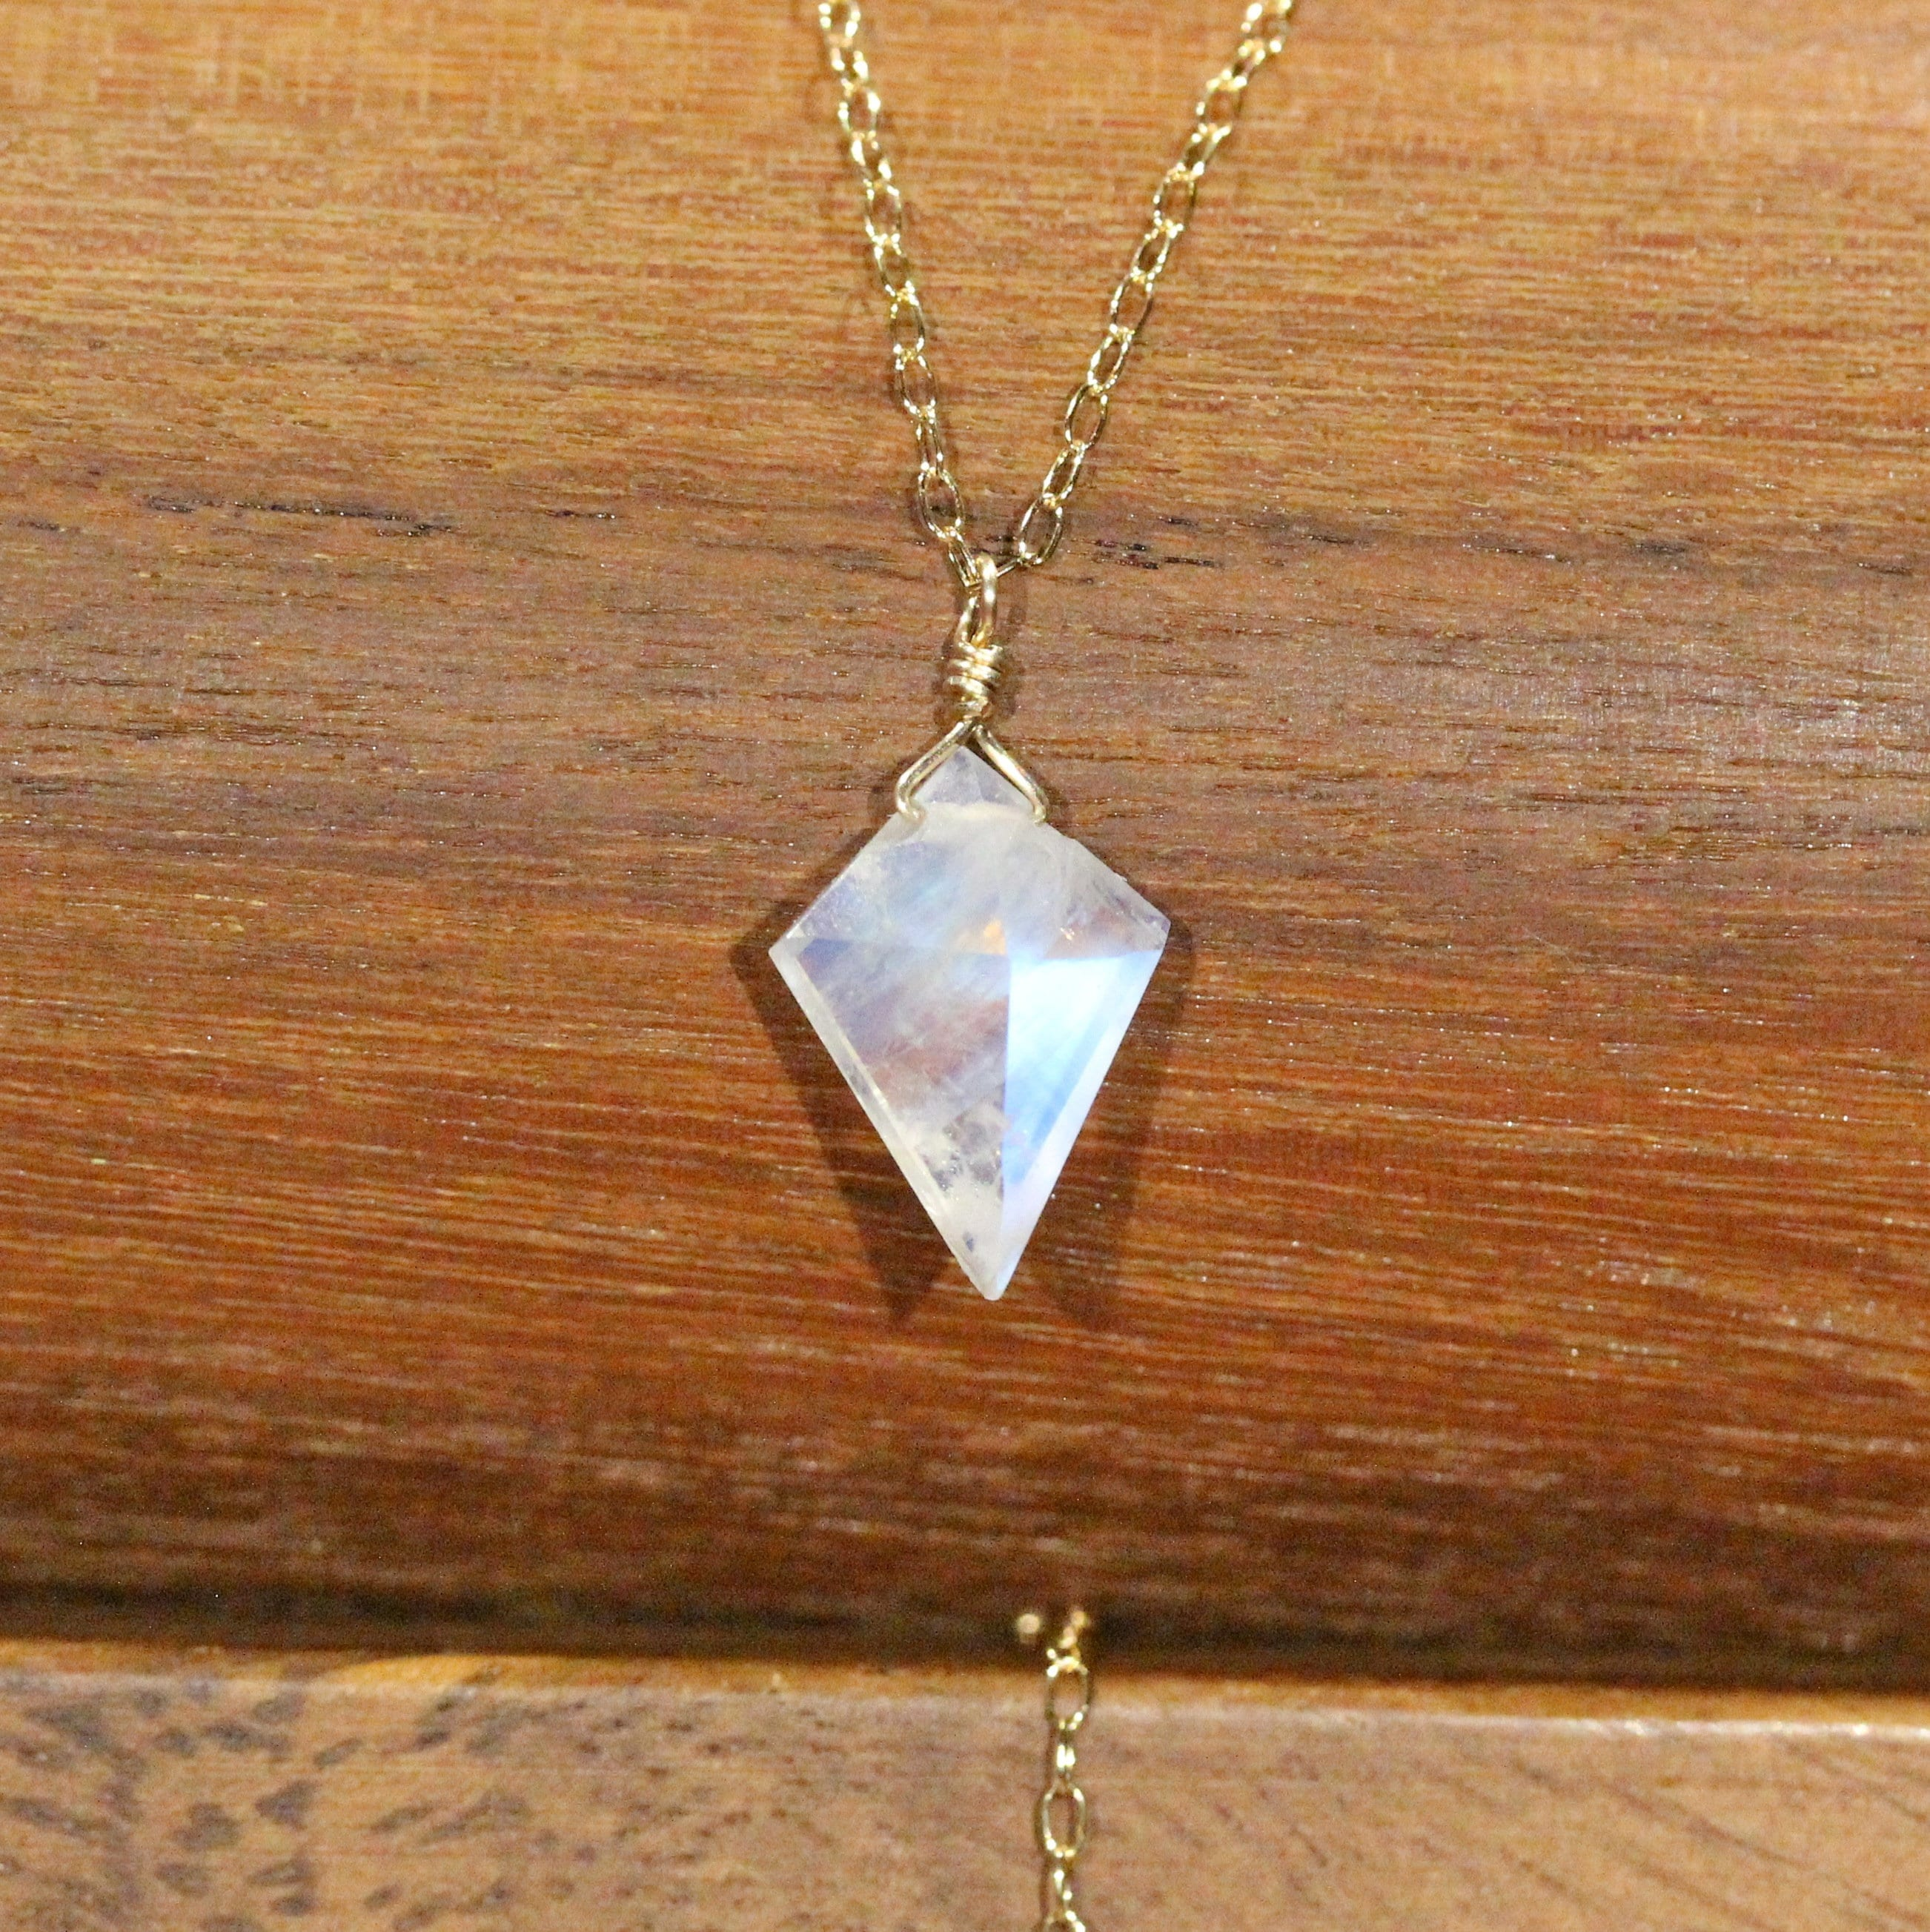 BS19-0113 Rainbow Moonstone Necklace Sterling Silver Rainbow Moonstone Teardrop Pendant Necklace June Birthstone Necklace